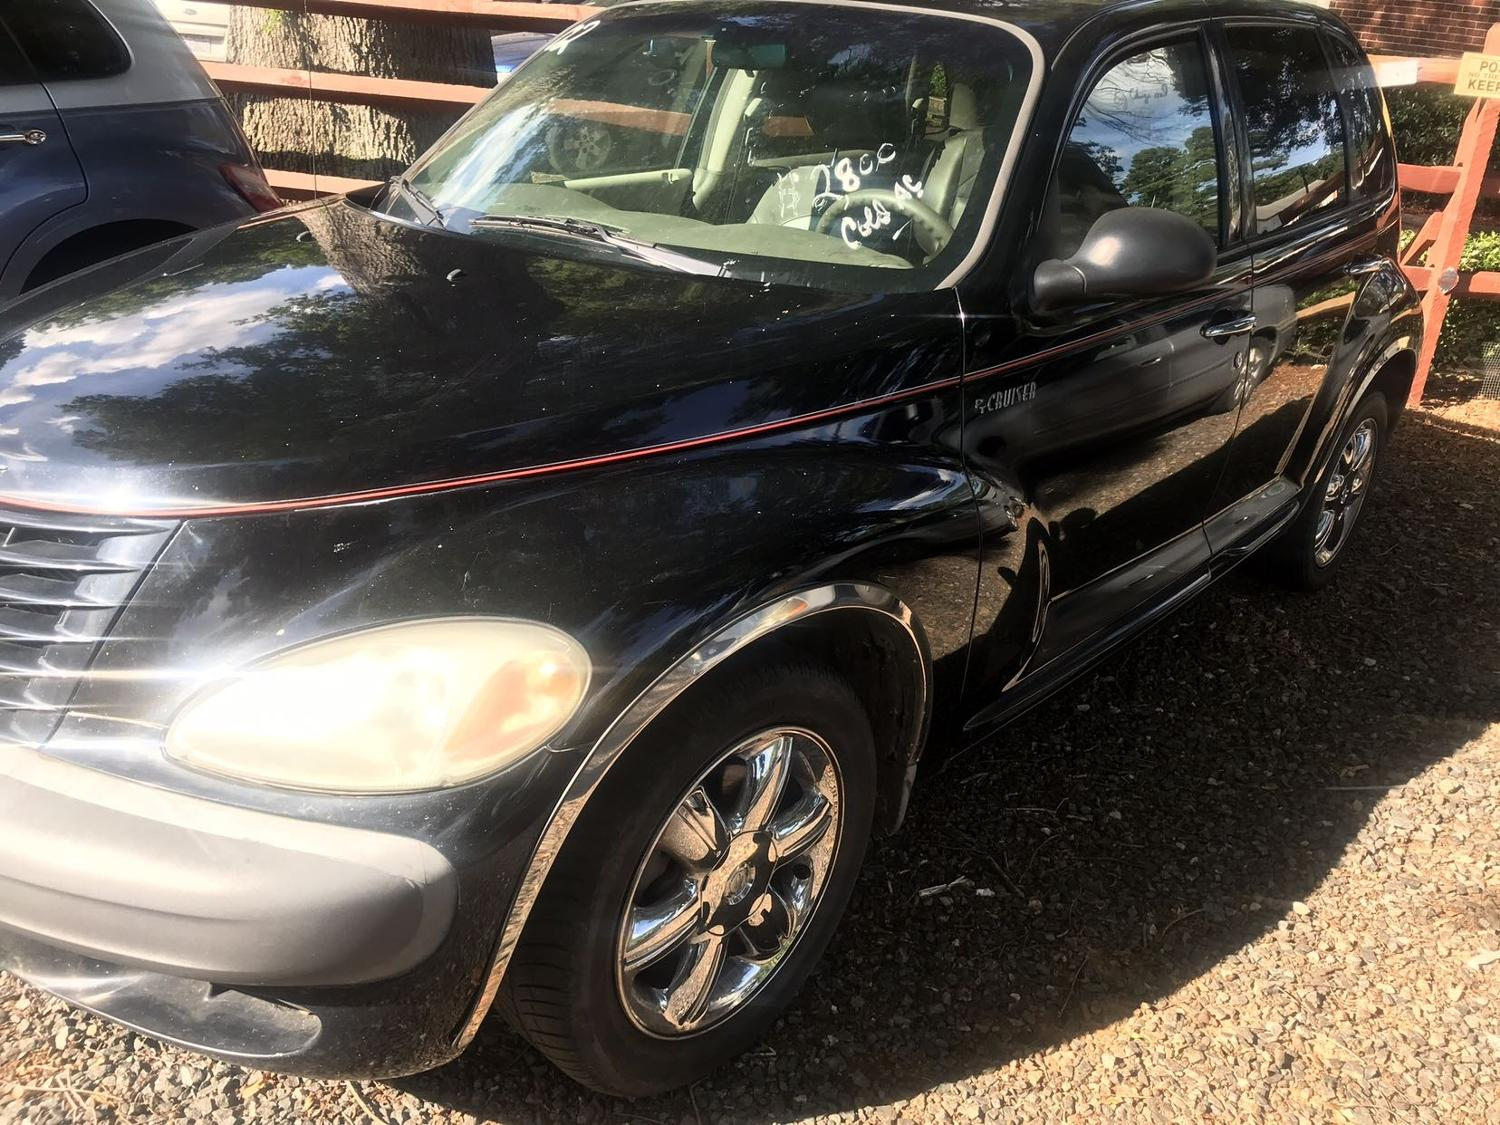 Best 2002 chrysler pt cruiser for sale in charlotte north carolina for 2019